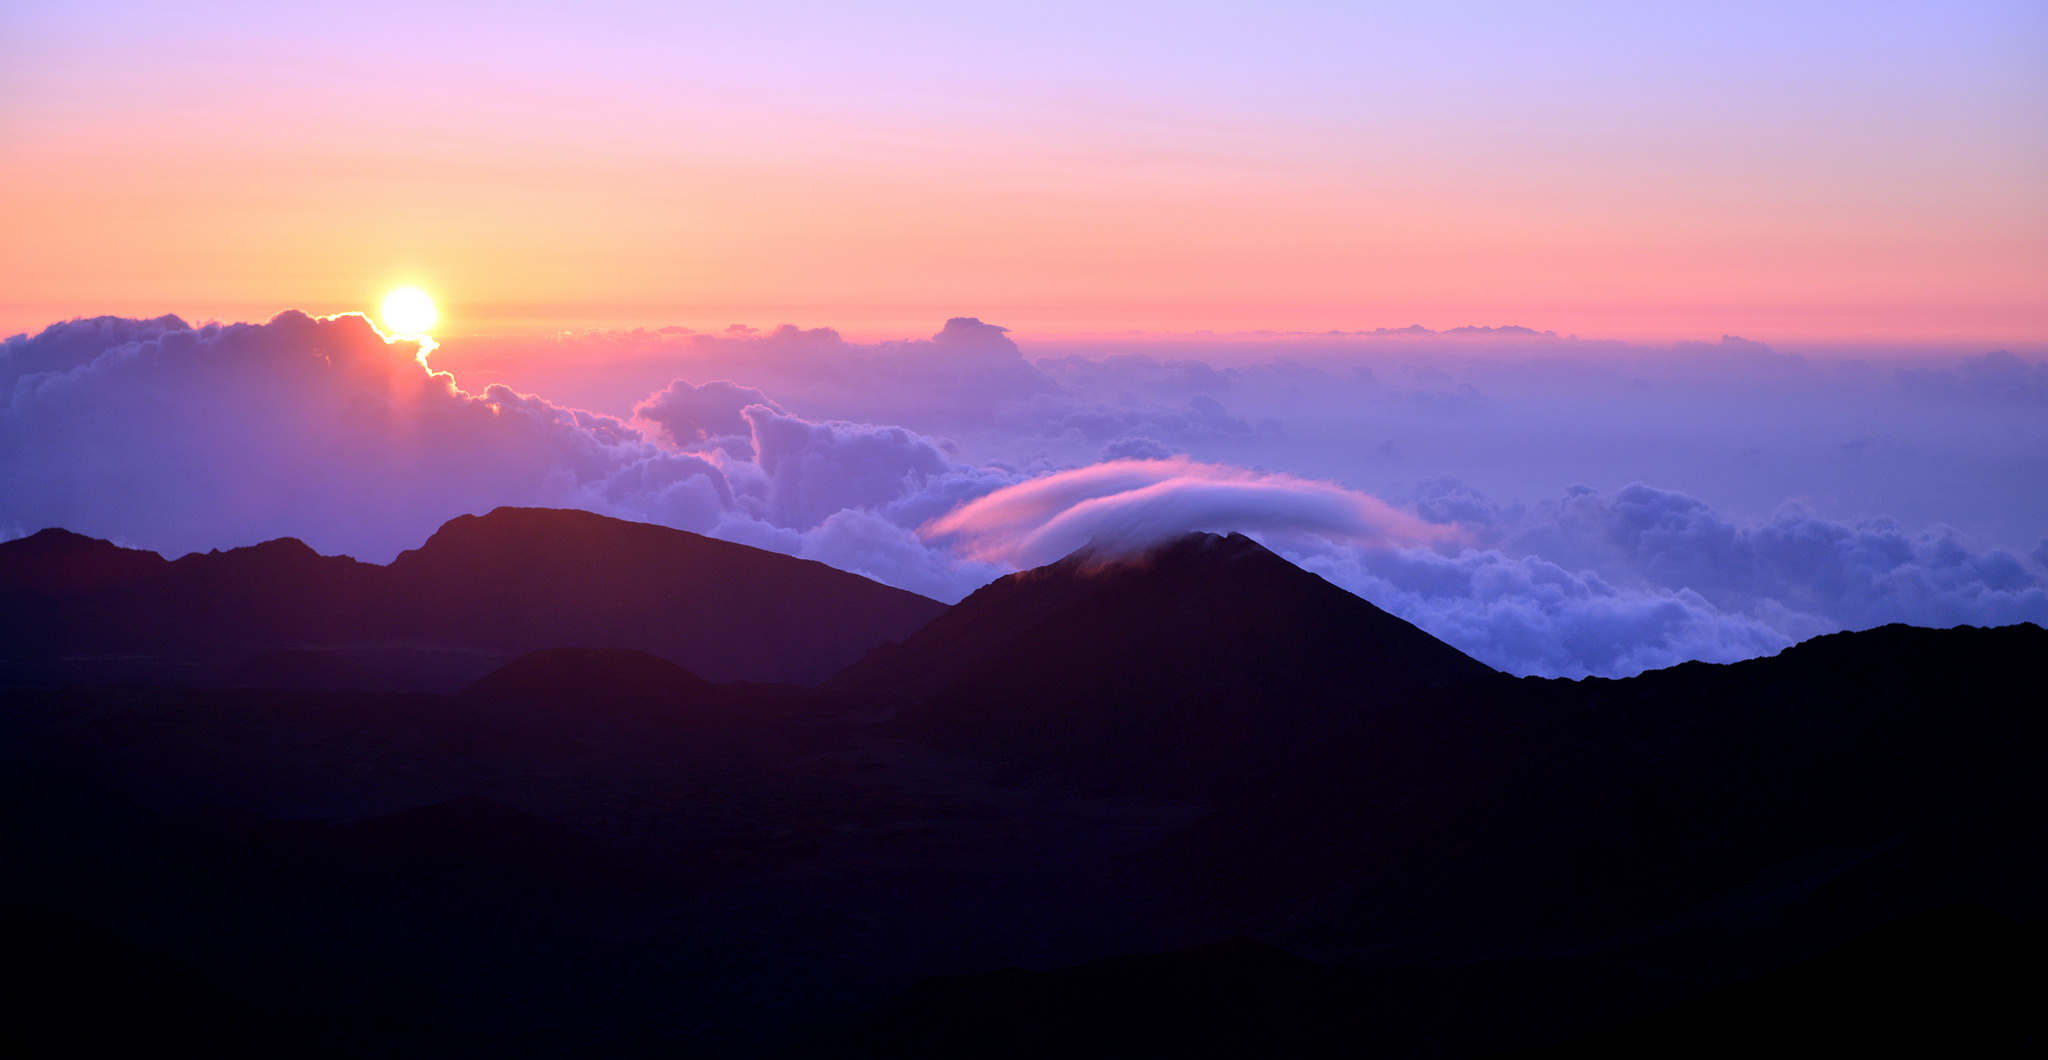 Sunrise at Haleakala National Park, Maui, Hawaii, USA